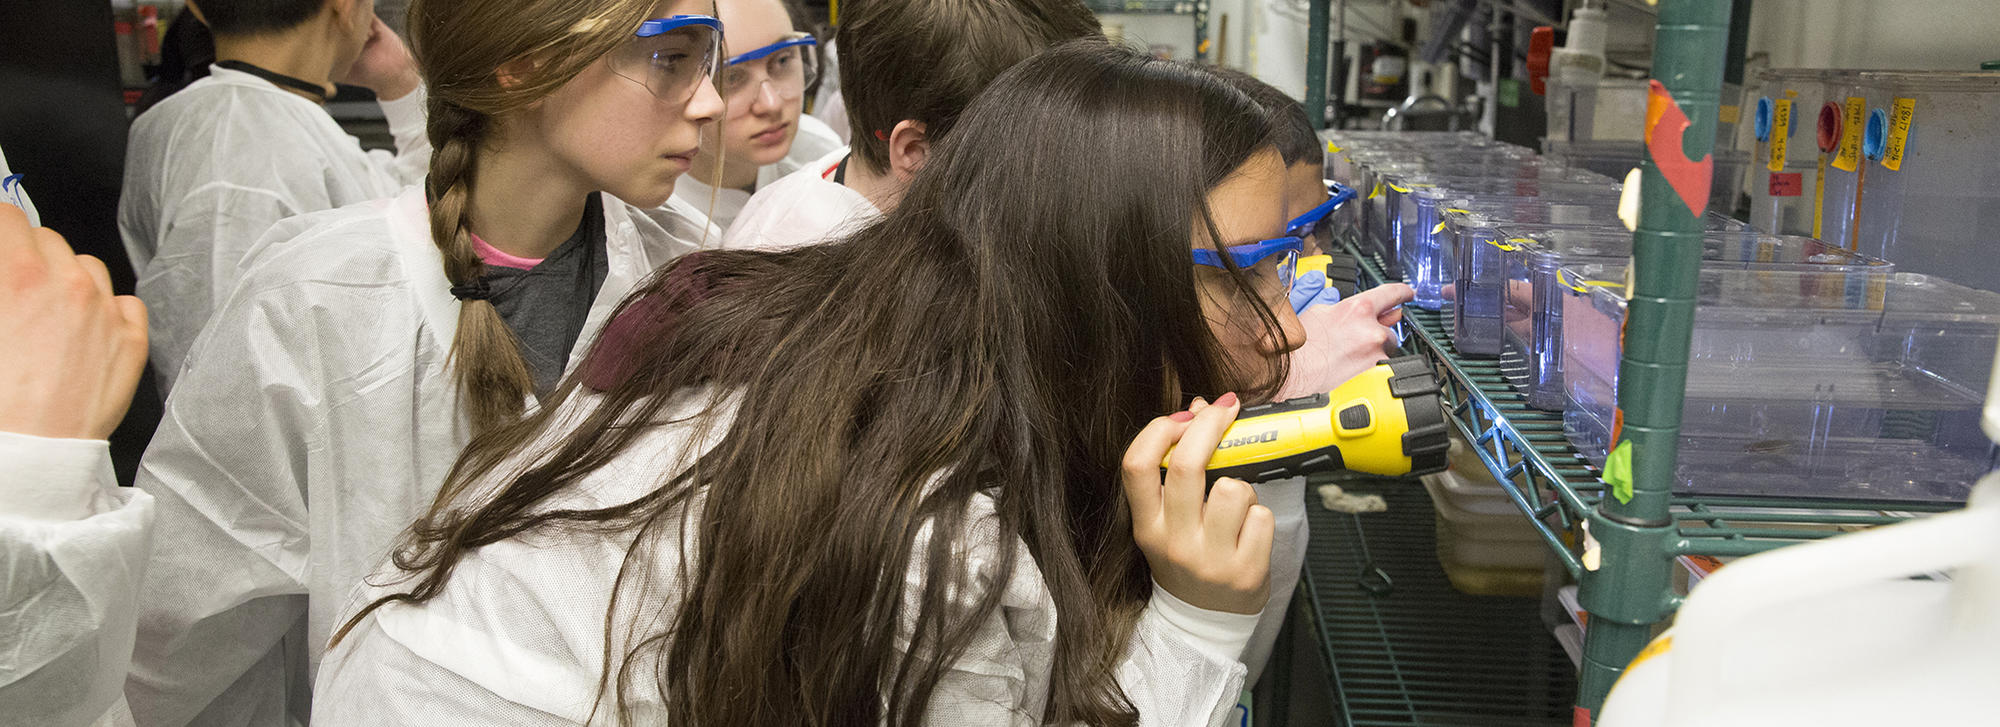 during your visit, students looking at science equipment